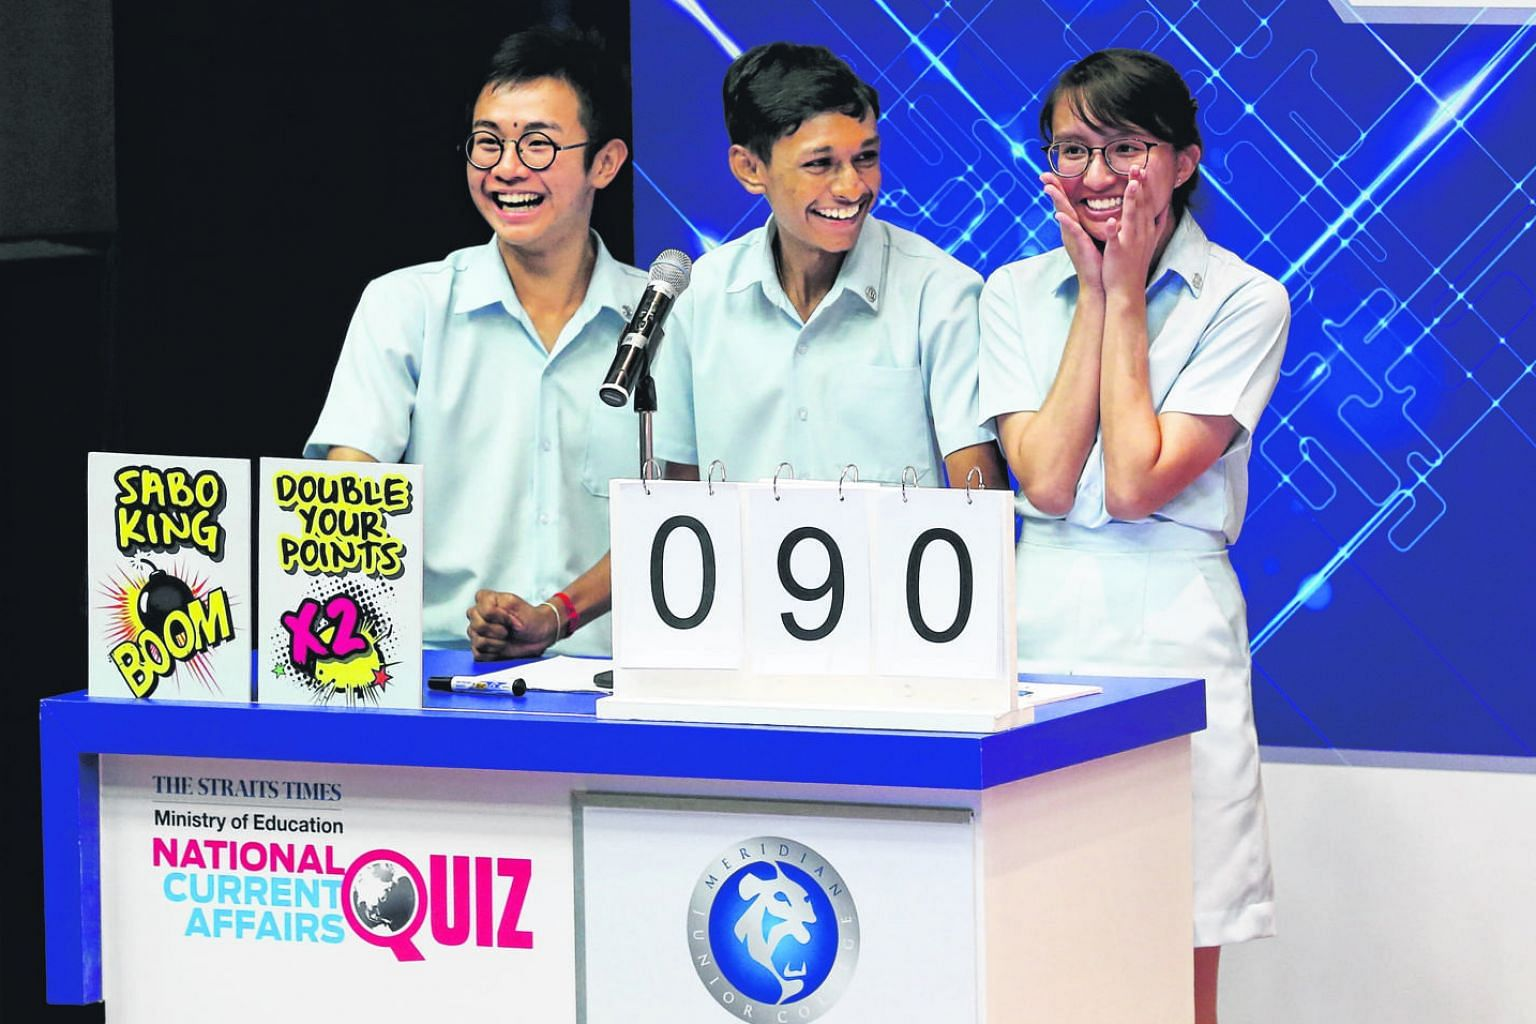 The Meridian Junior College team, comprising (from left) Tan Yu, Jev Akshay and Nadia Liana, beat the second-placed Temasek JC team by just 10 points in Wednesday's competition.